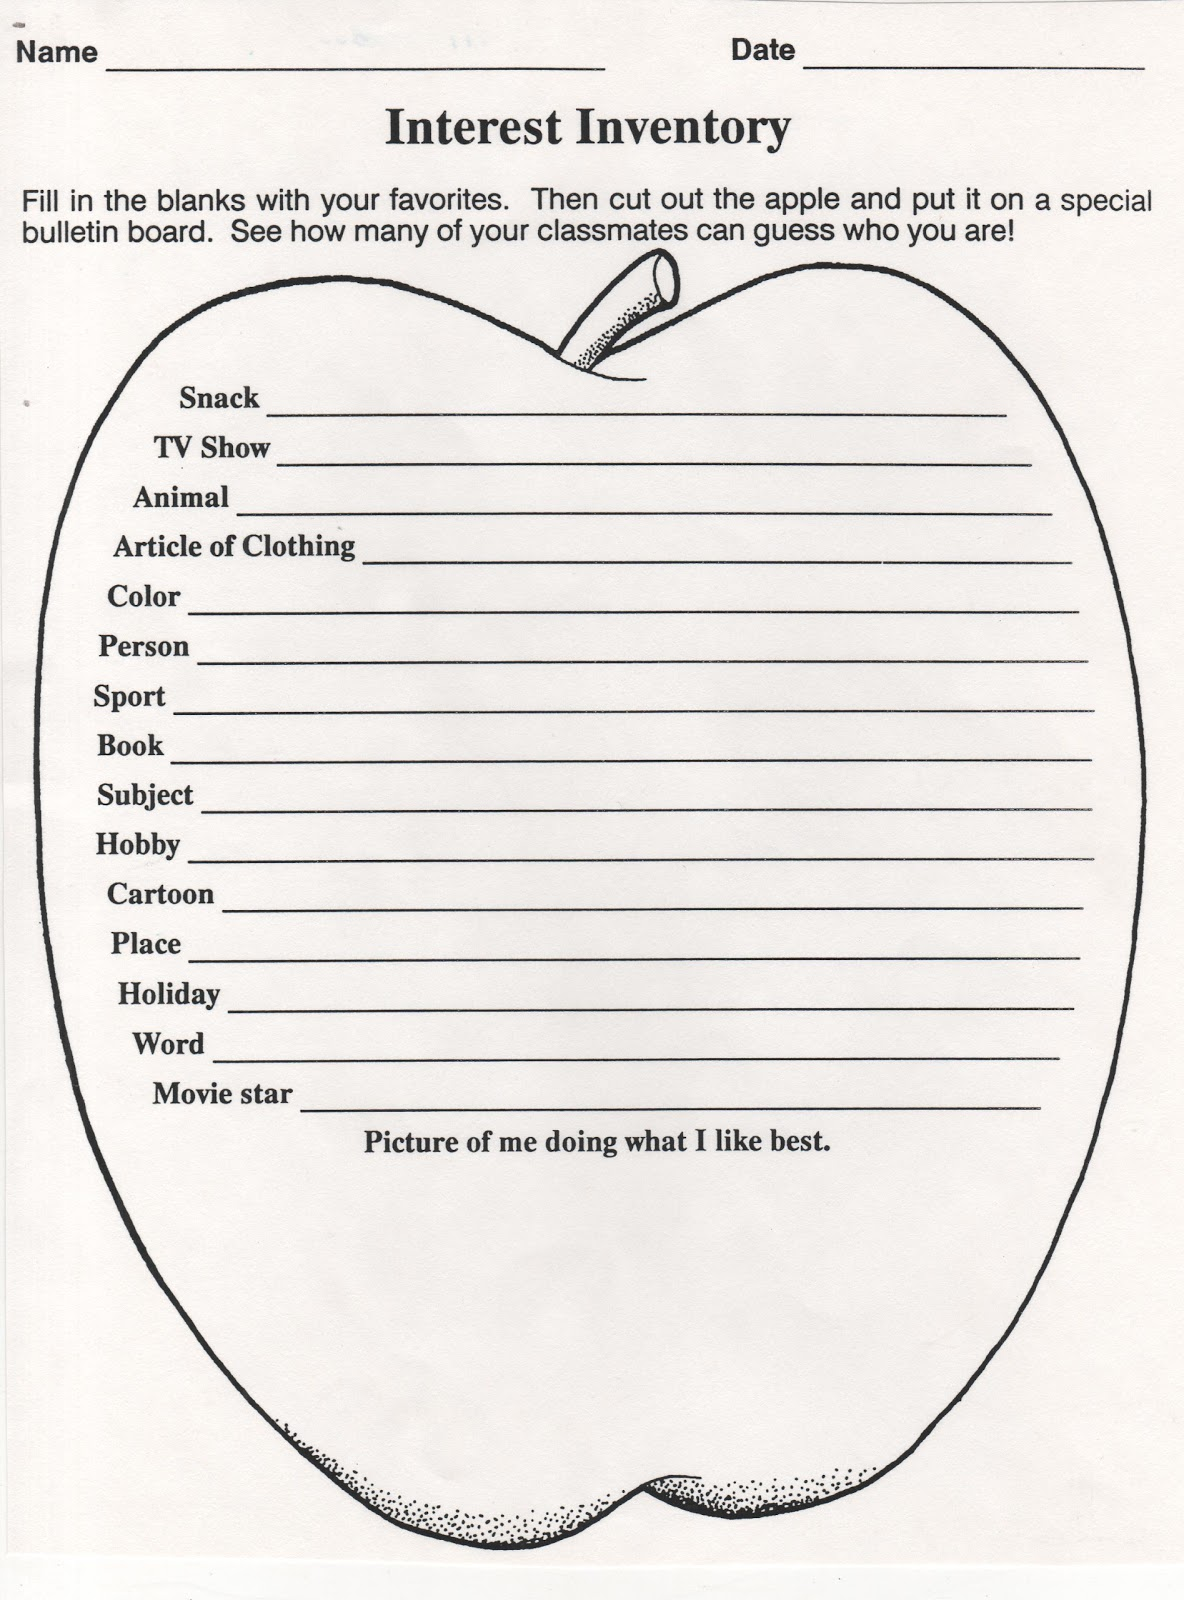 Zany image for interest inventory for elementary students printable